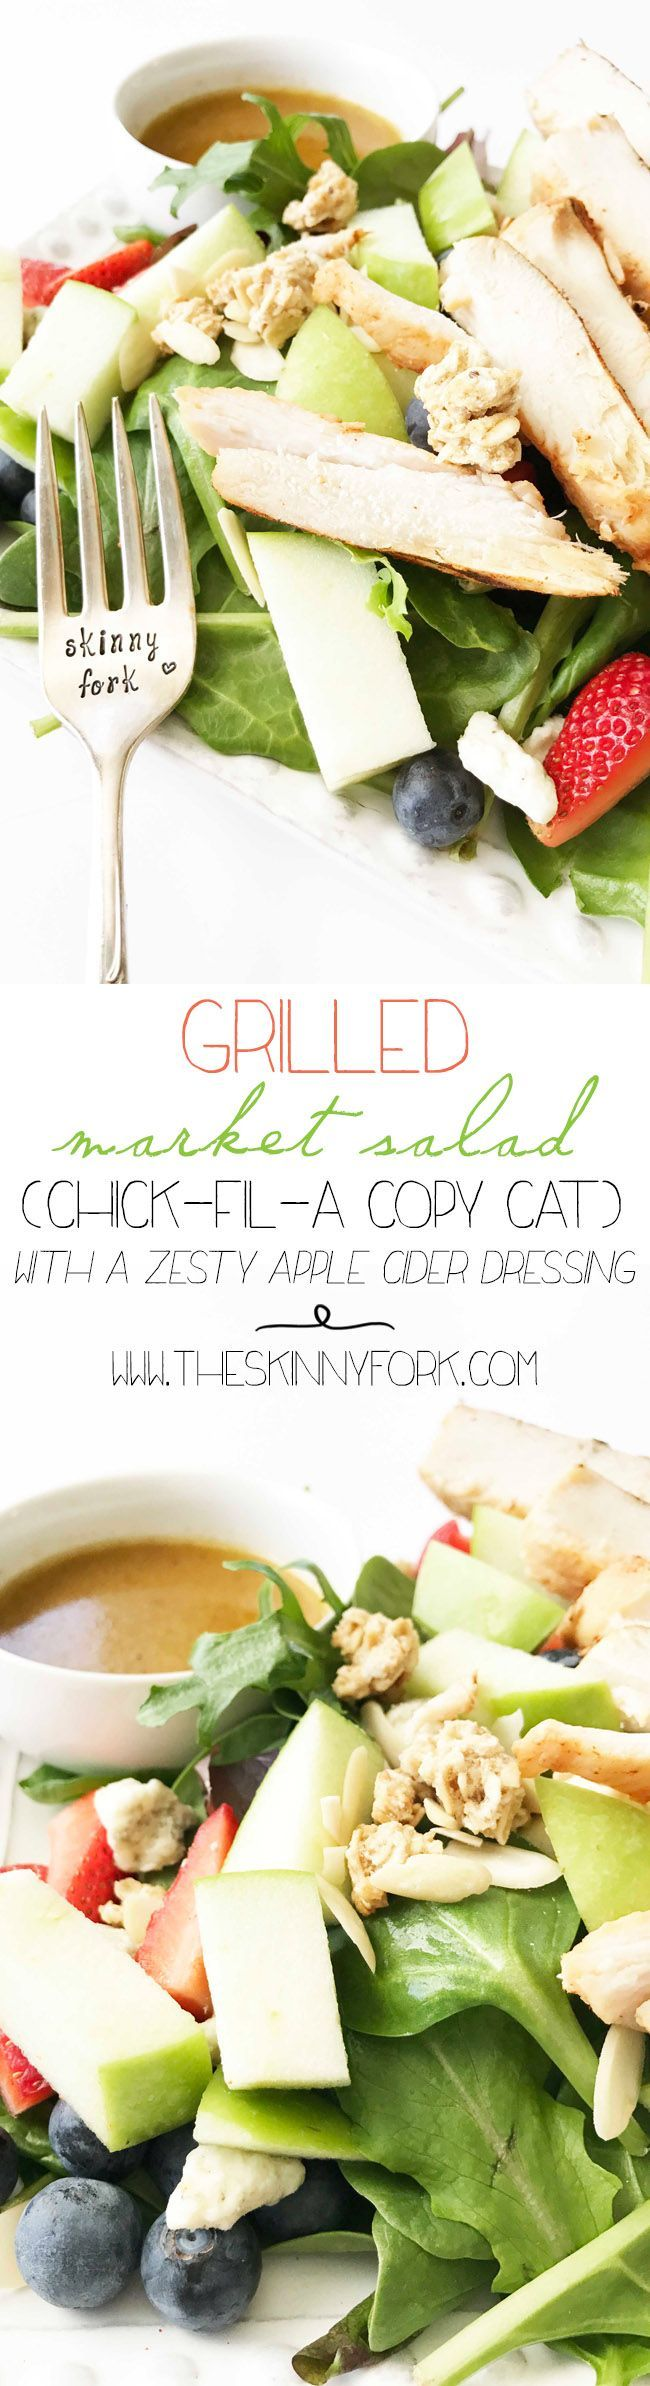 I'm in LOVE with this Grilled Market Salad & Zesty Dressing! It's one of my all time favorites.  It's a Chick-Fil-A Copy Cat. In other words it's take-out fake-out time. Make this salad ahead for a week full of prepared grab-n-go lunches! TheSkinnyFork.com | Skinny & Healthy Recipes